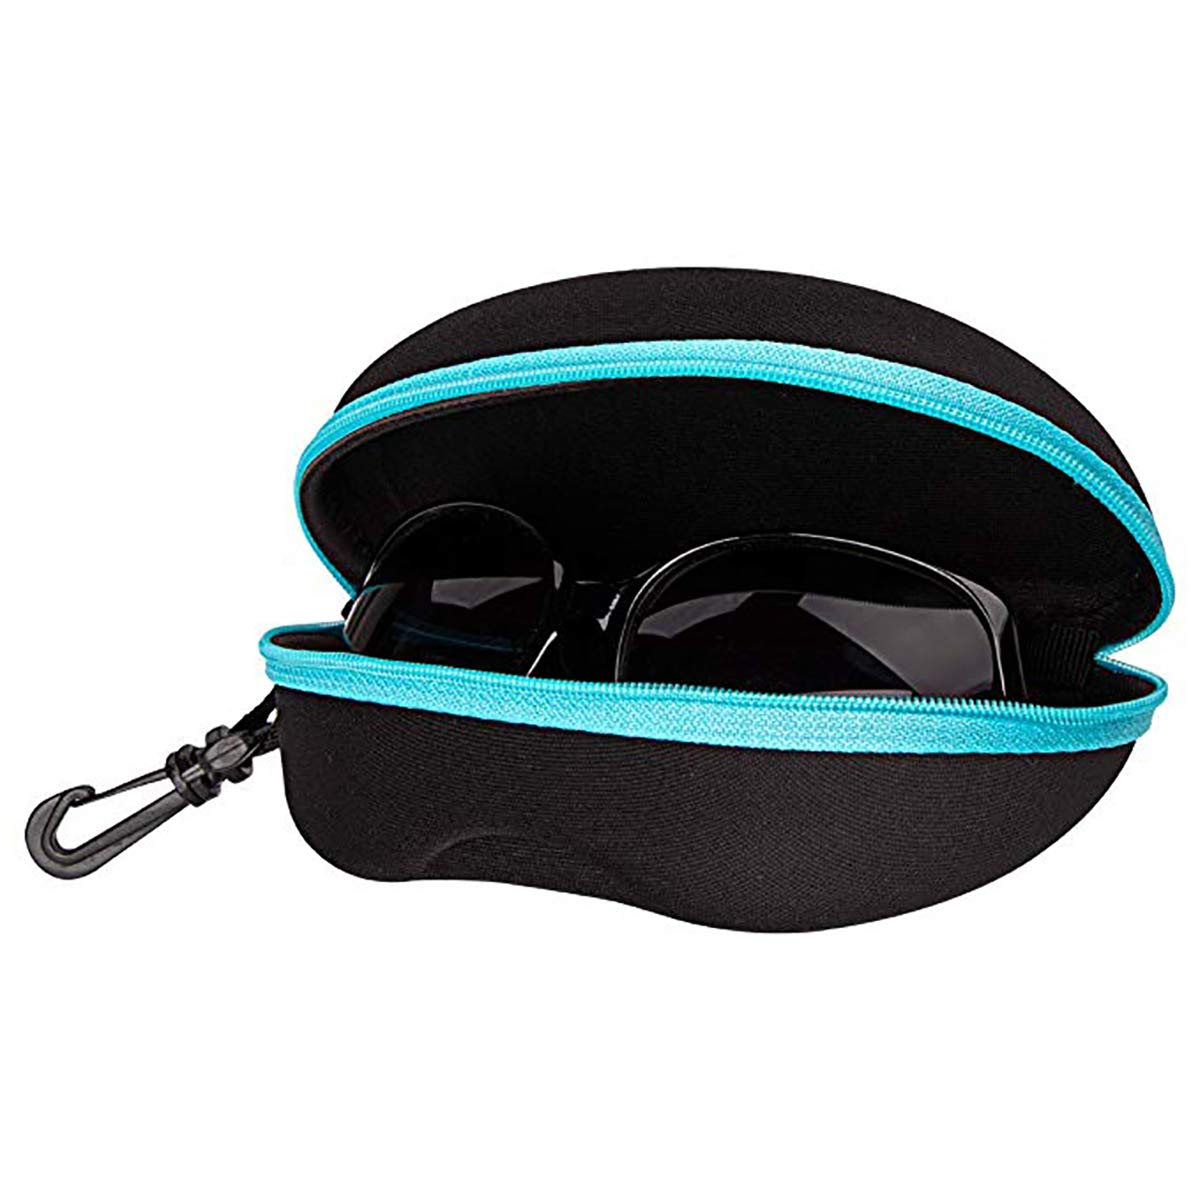 Clip Plastic Carabiner Hook FF1 Zipper Shell Sunglasses Glasses Case with Belt Loop